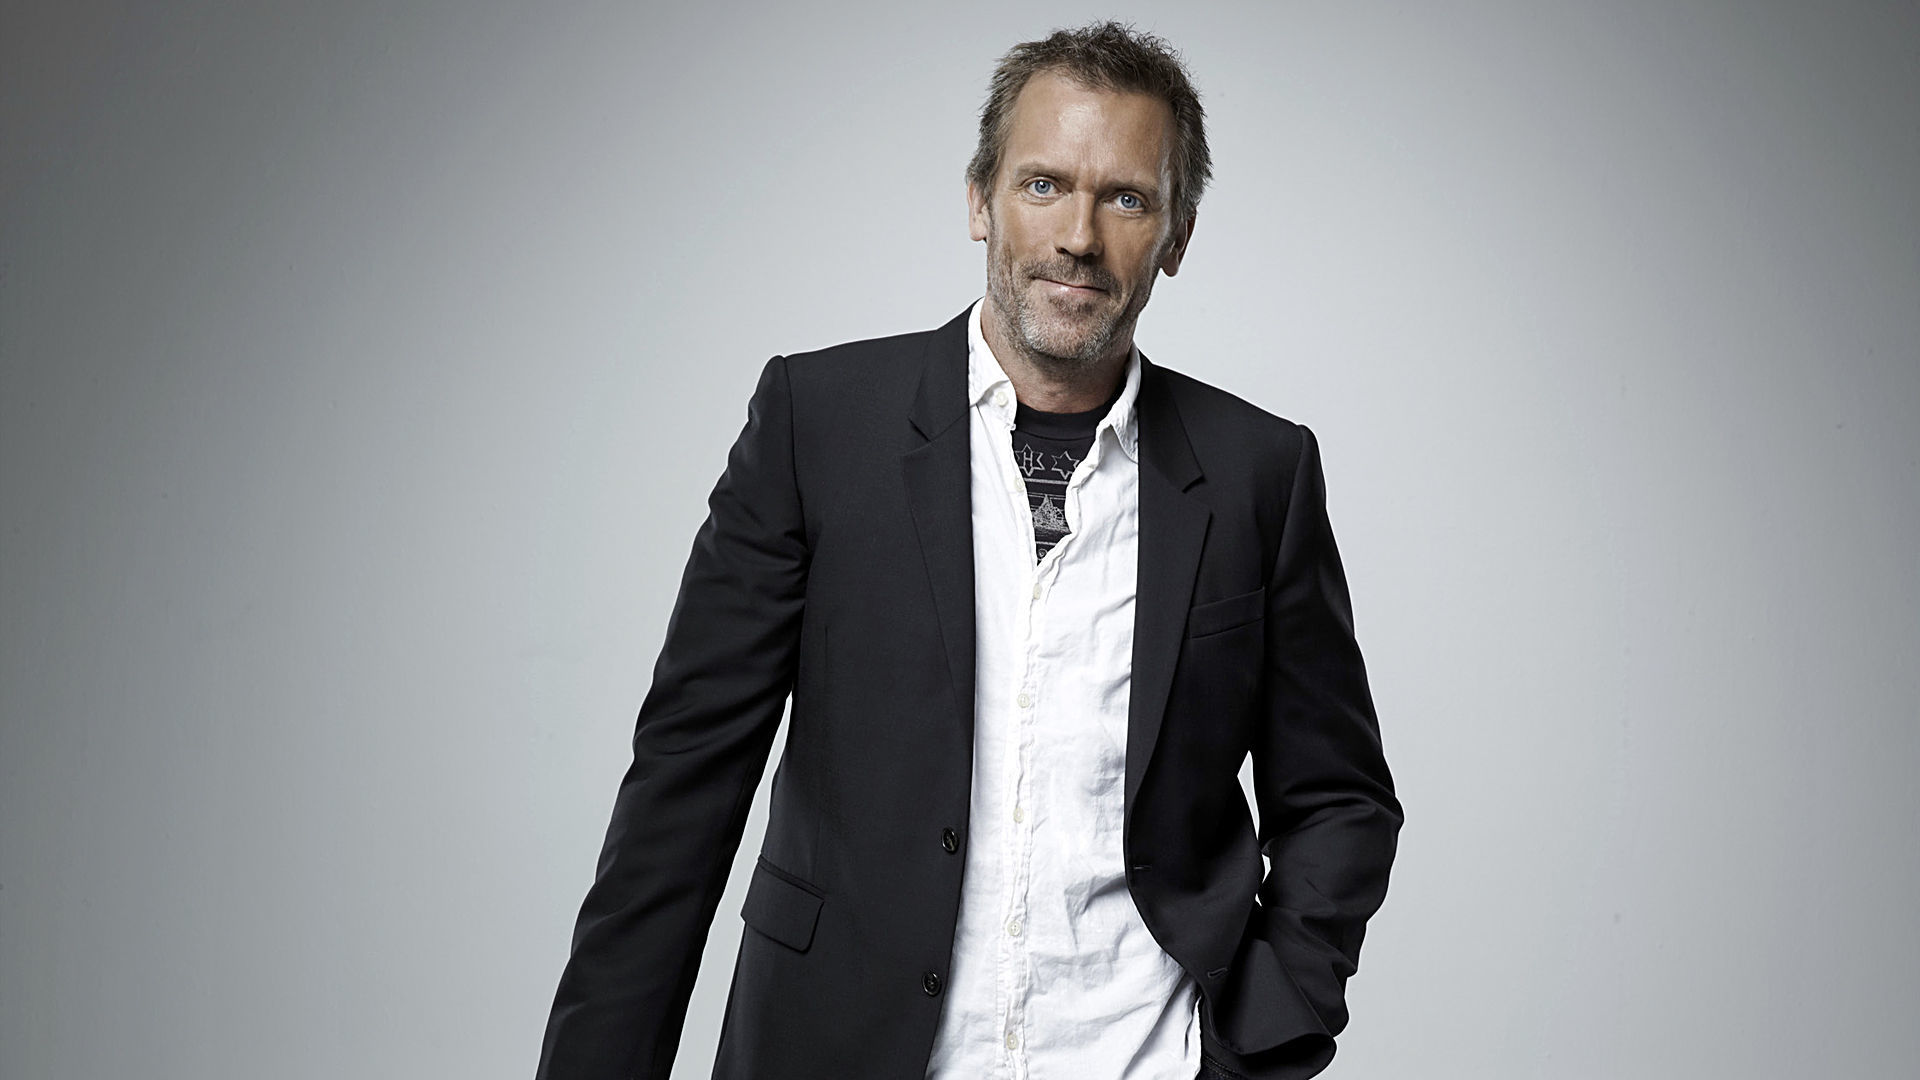 Dr House Wallpapers Dr House Full Body 1084308 Hd